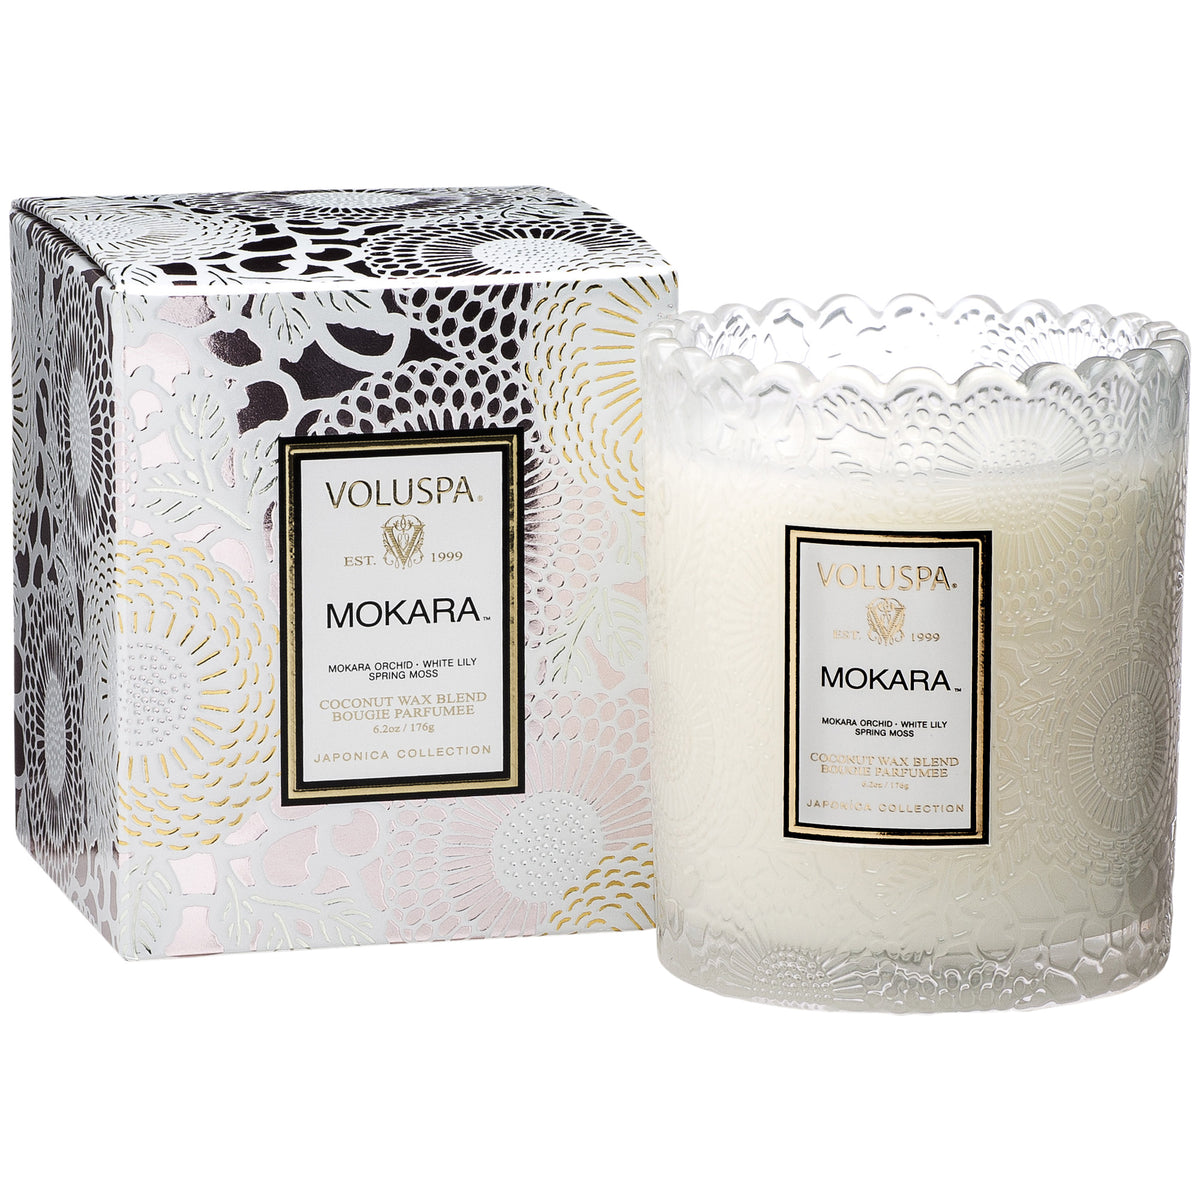 Mokara - Scalloped Edge Candle - 1